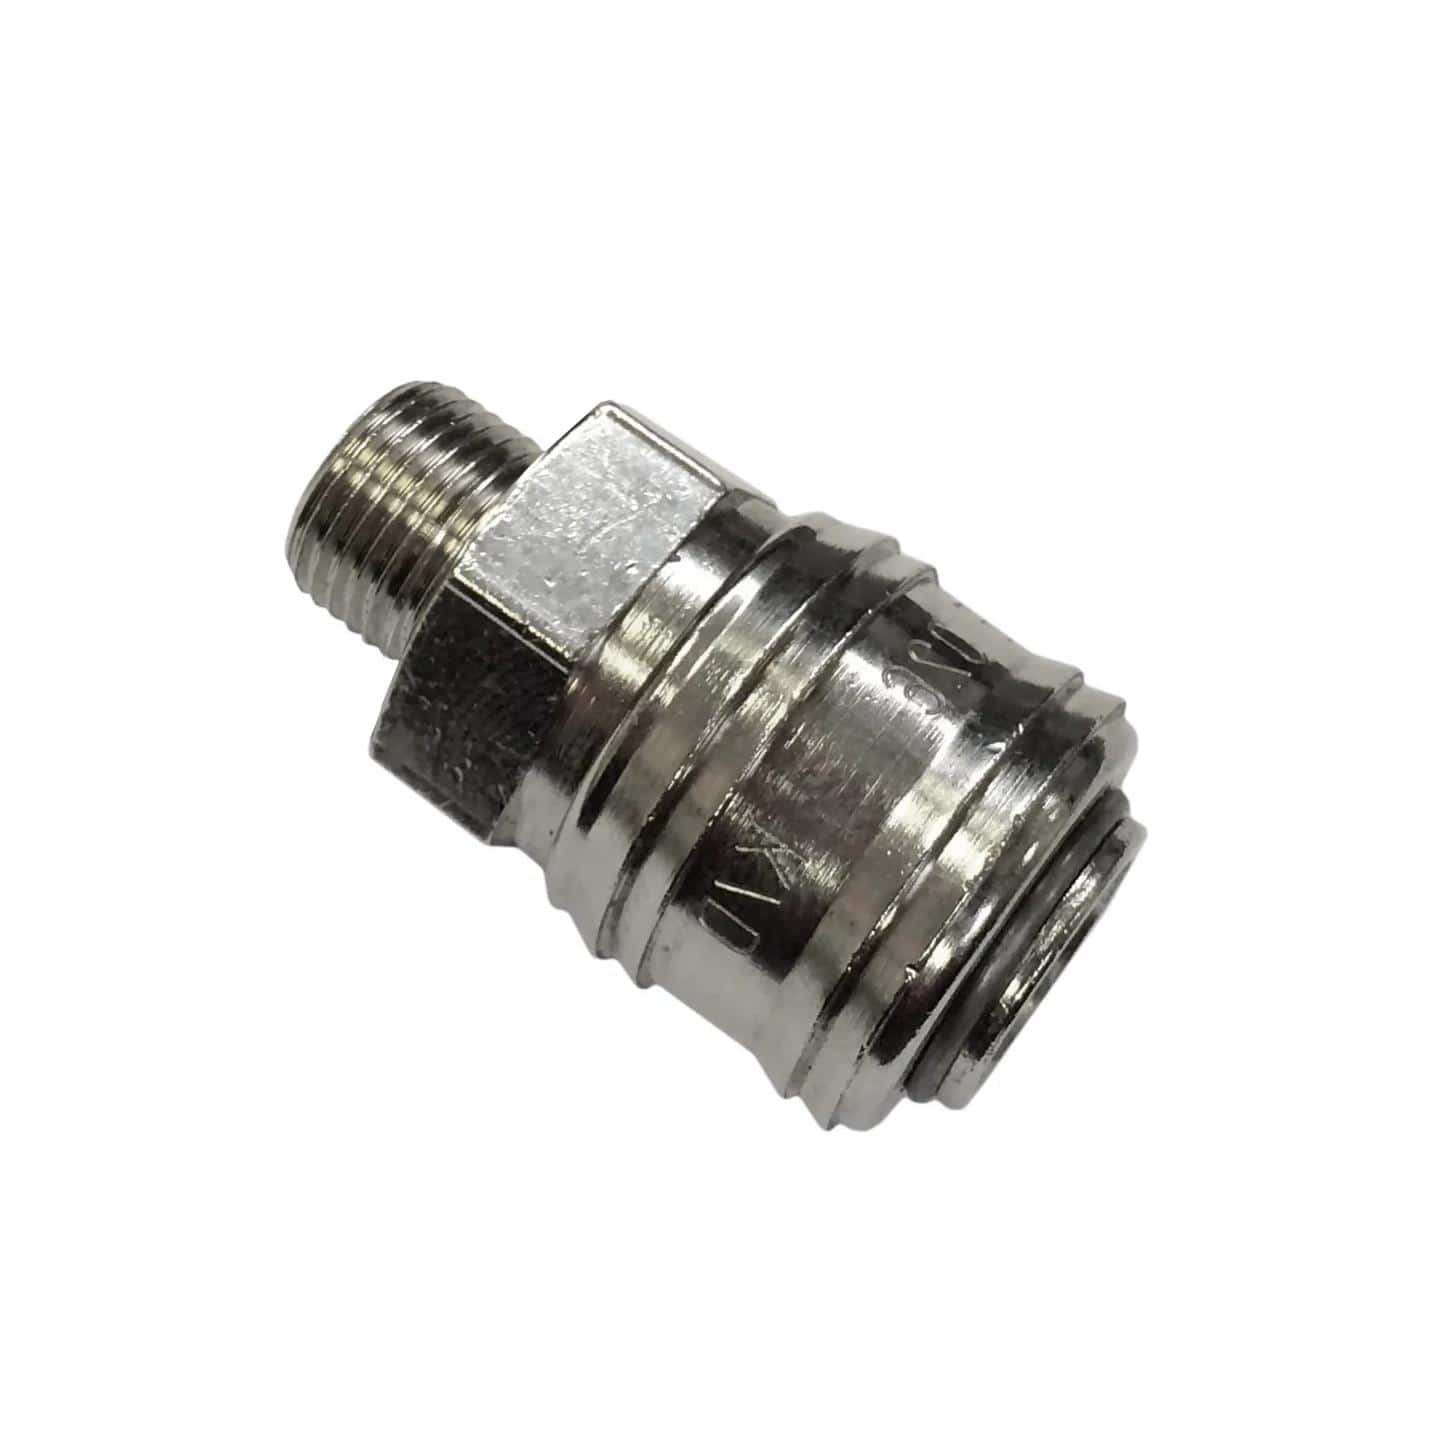 "Series 26 Female to Male 1/4"" Threaded Coupling - Window Cleaning Warehouse Ltd"